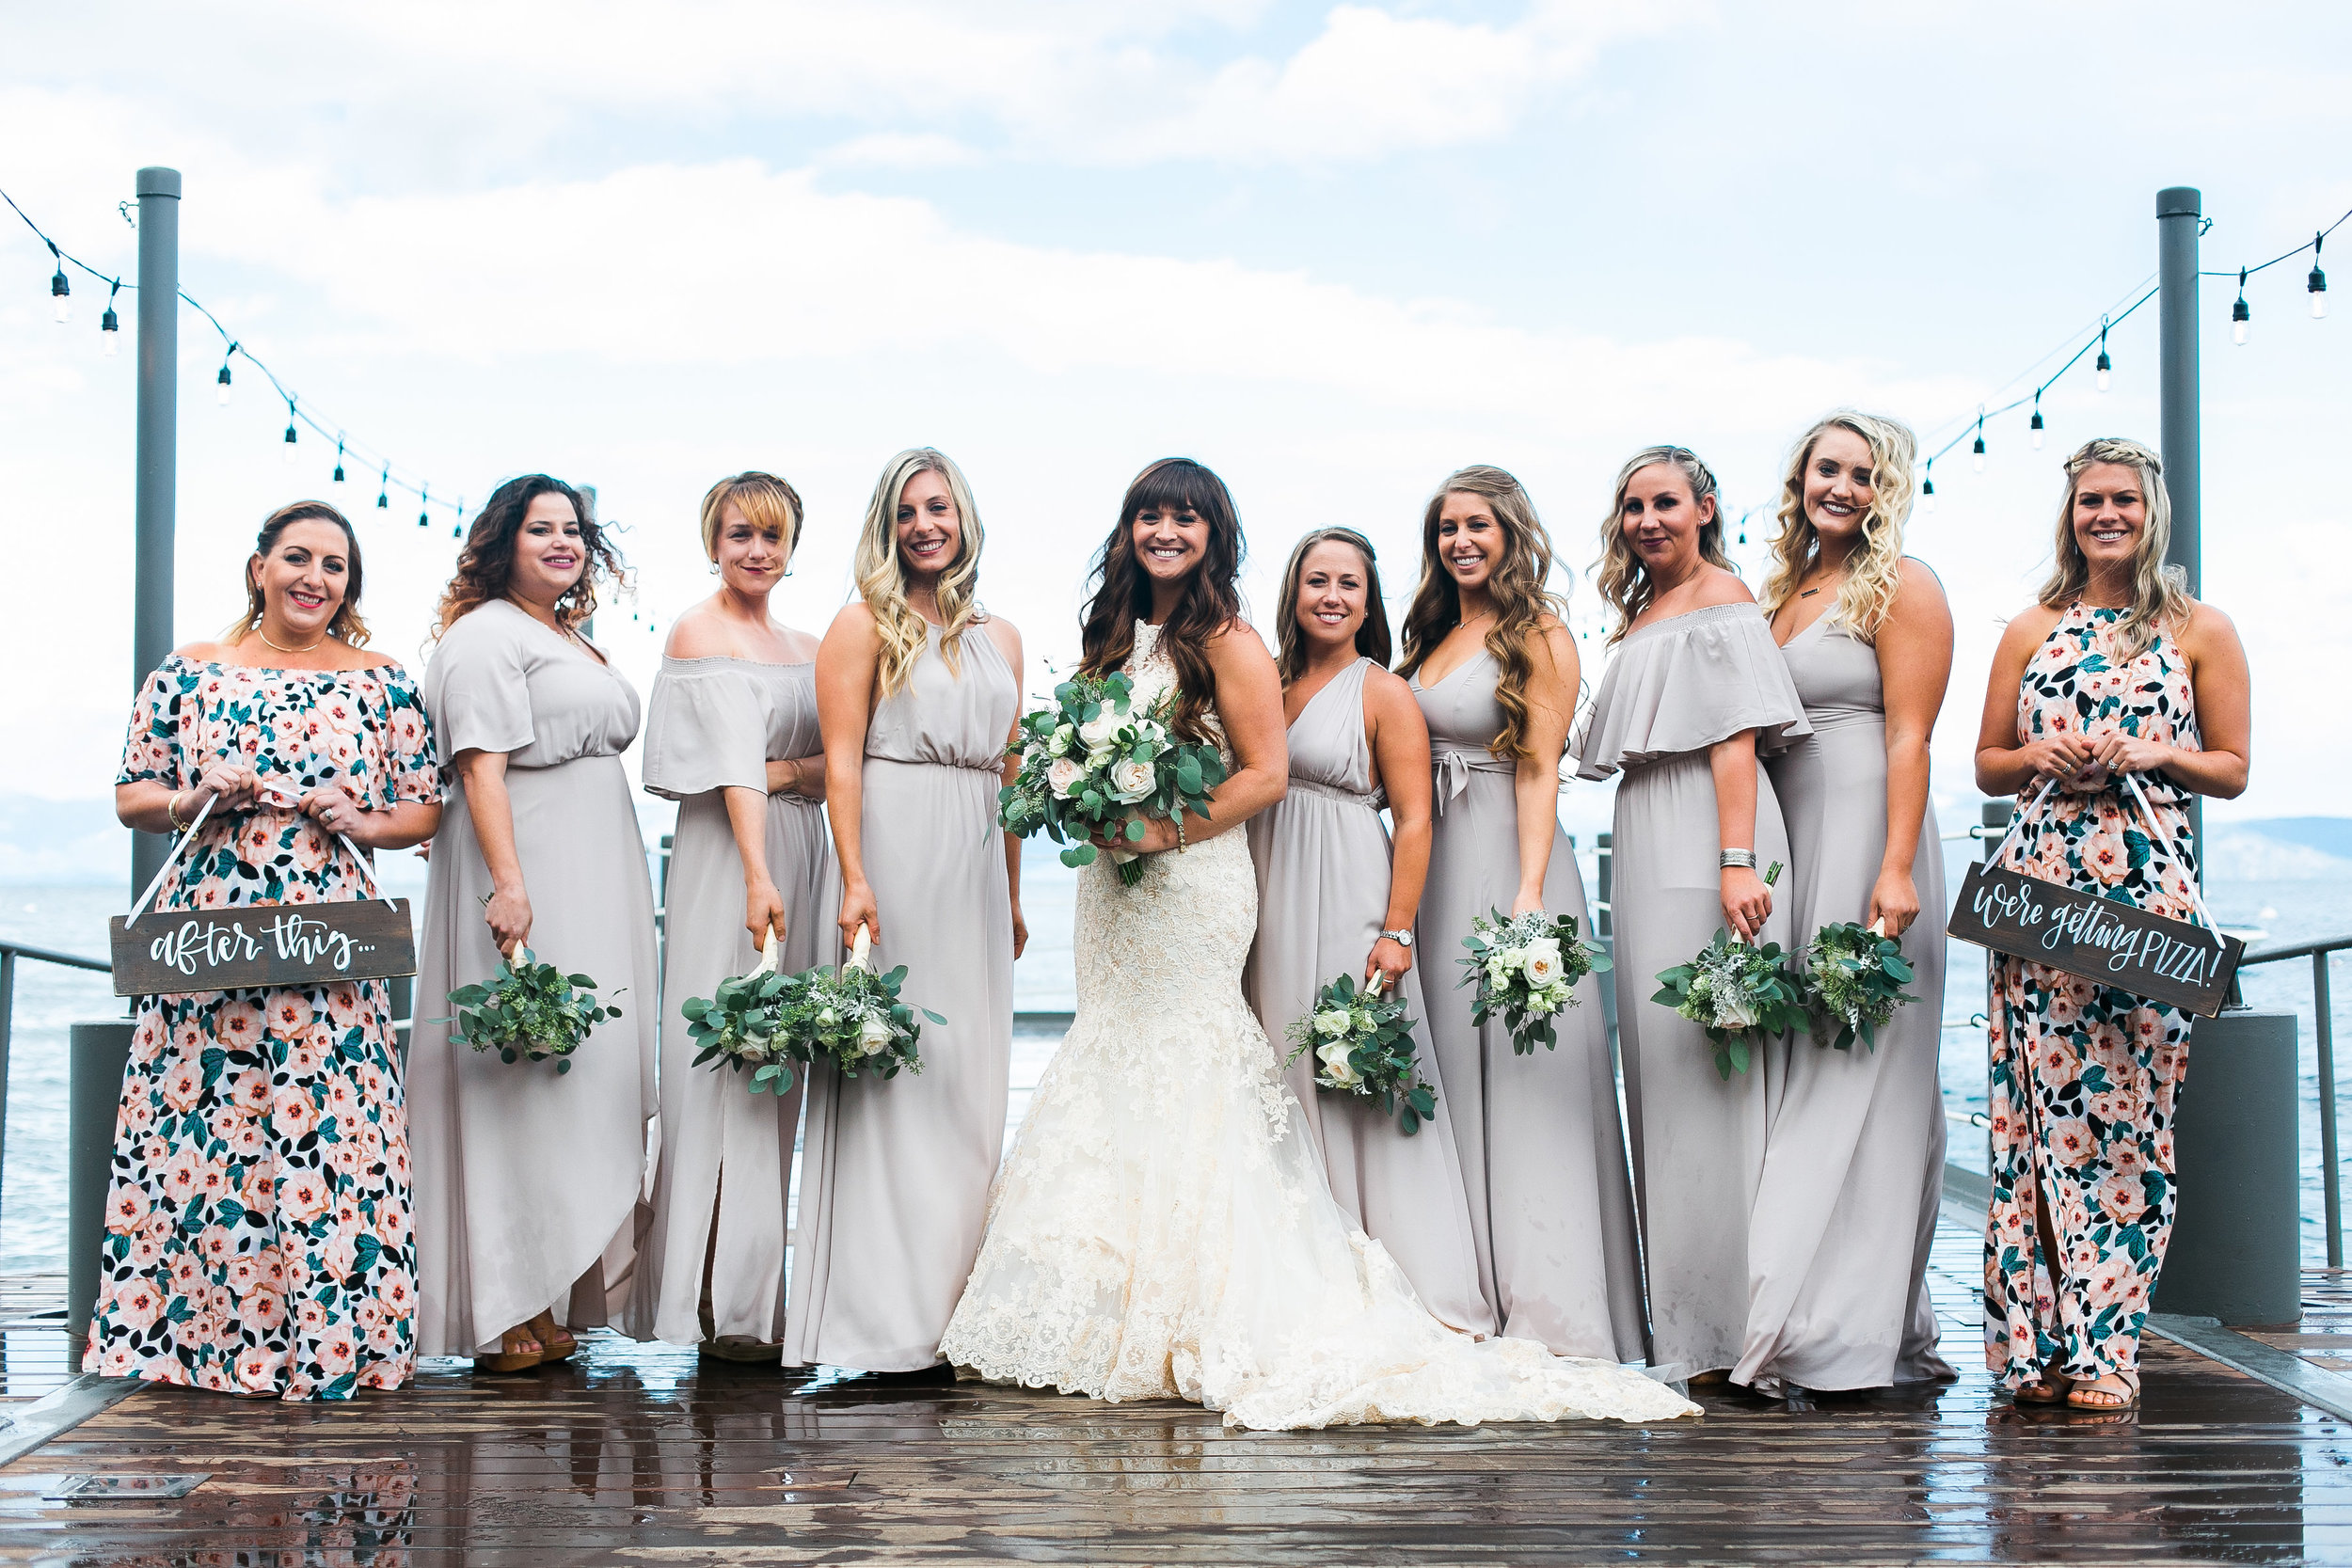 Fun fact: I've known most of my bridesmaids for 10 years. Each of them are such an important part of my life and it meant so much to me to have them by my side.